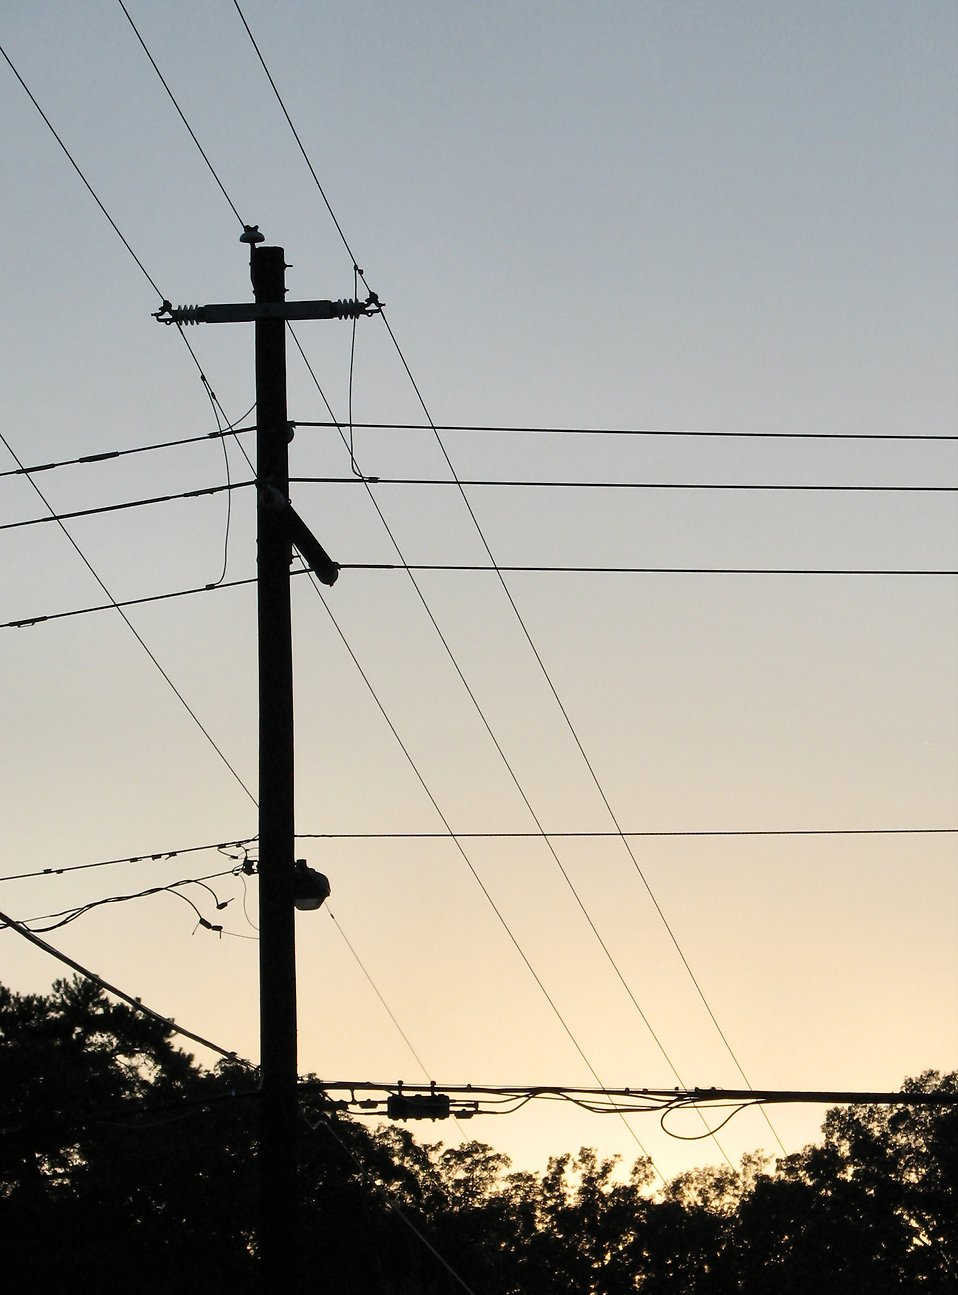 Power lines at sunset : Free Stock Photo